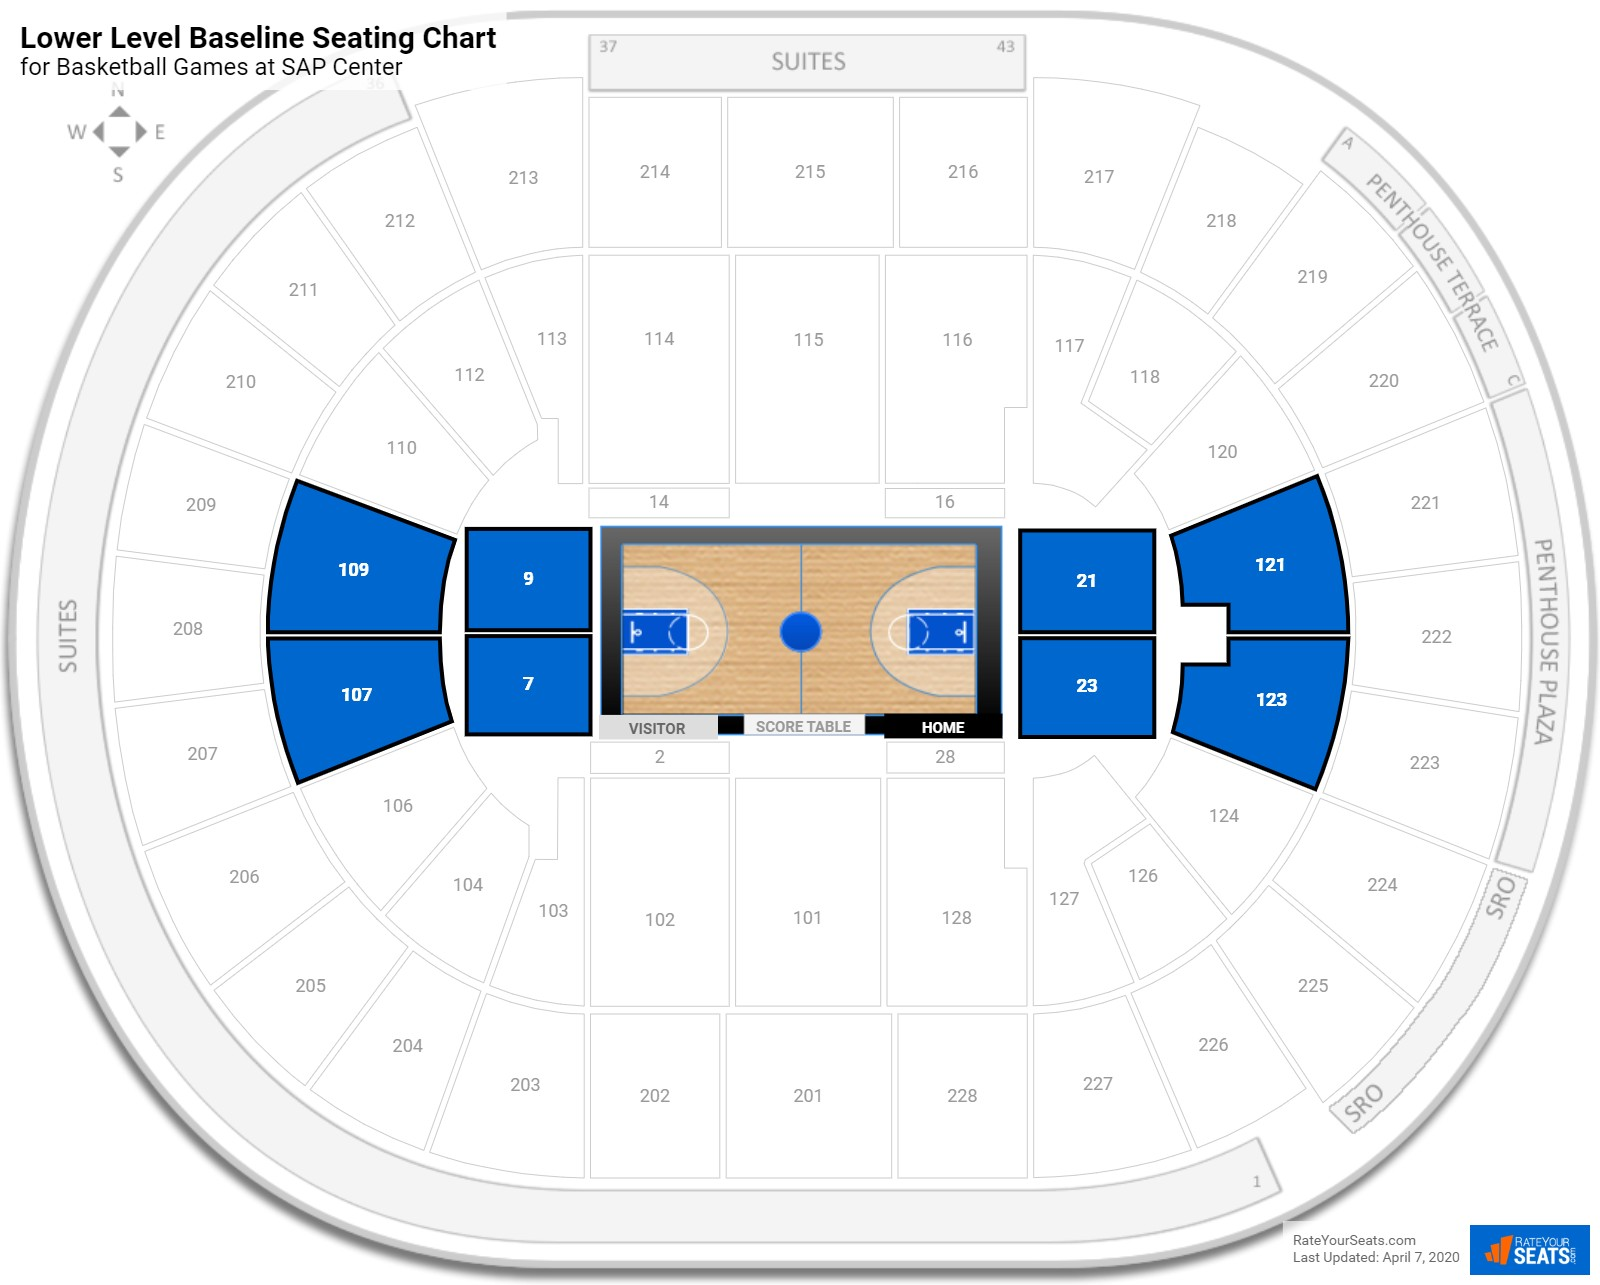 Sap center seating chart justin bieber for Level table sap